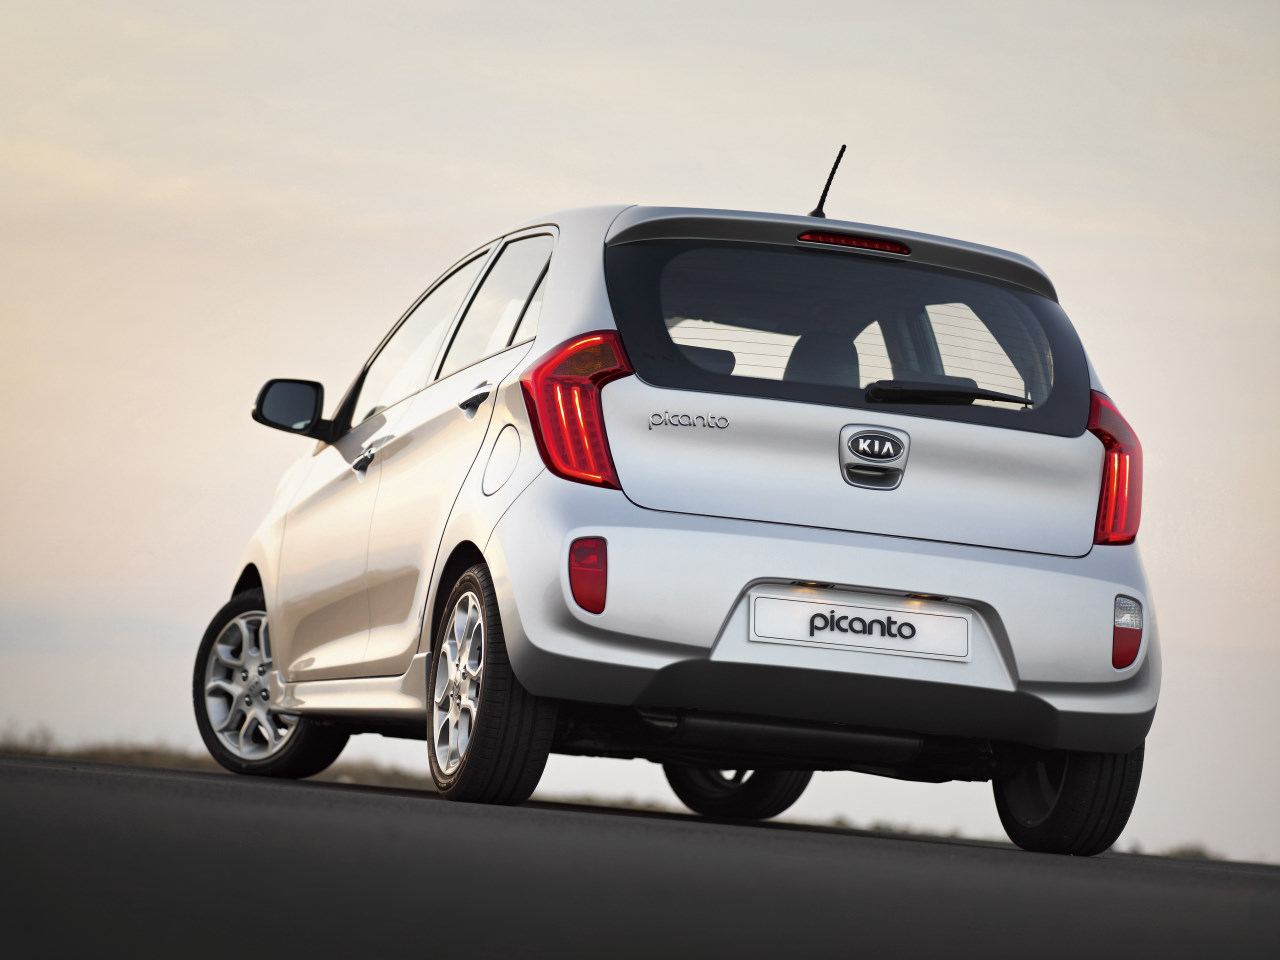 prices of new 2012 kia picanto and new photos garage car. Black Bedroom Furniture Sets. Home Design Ideas